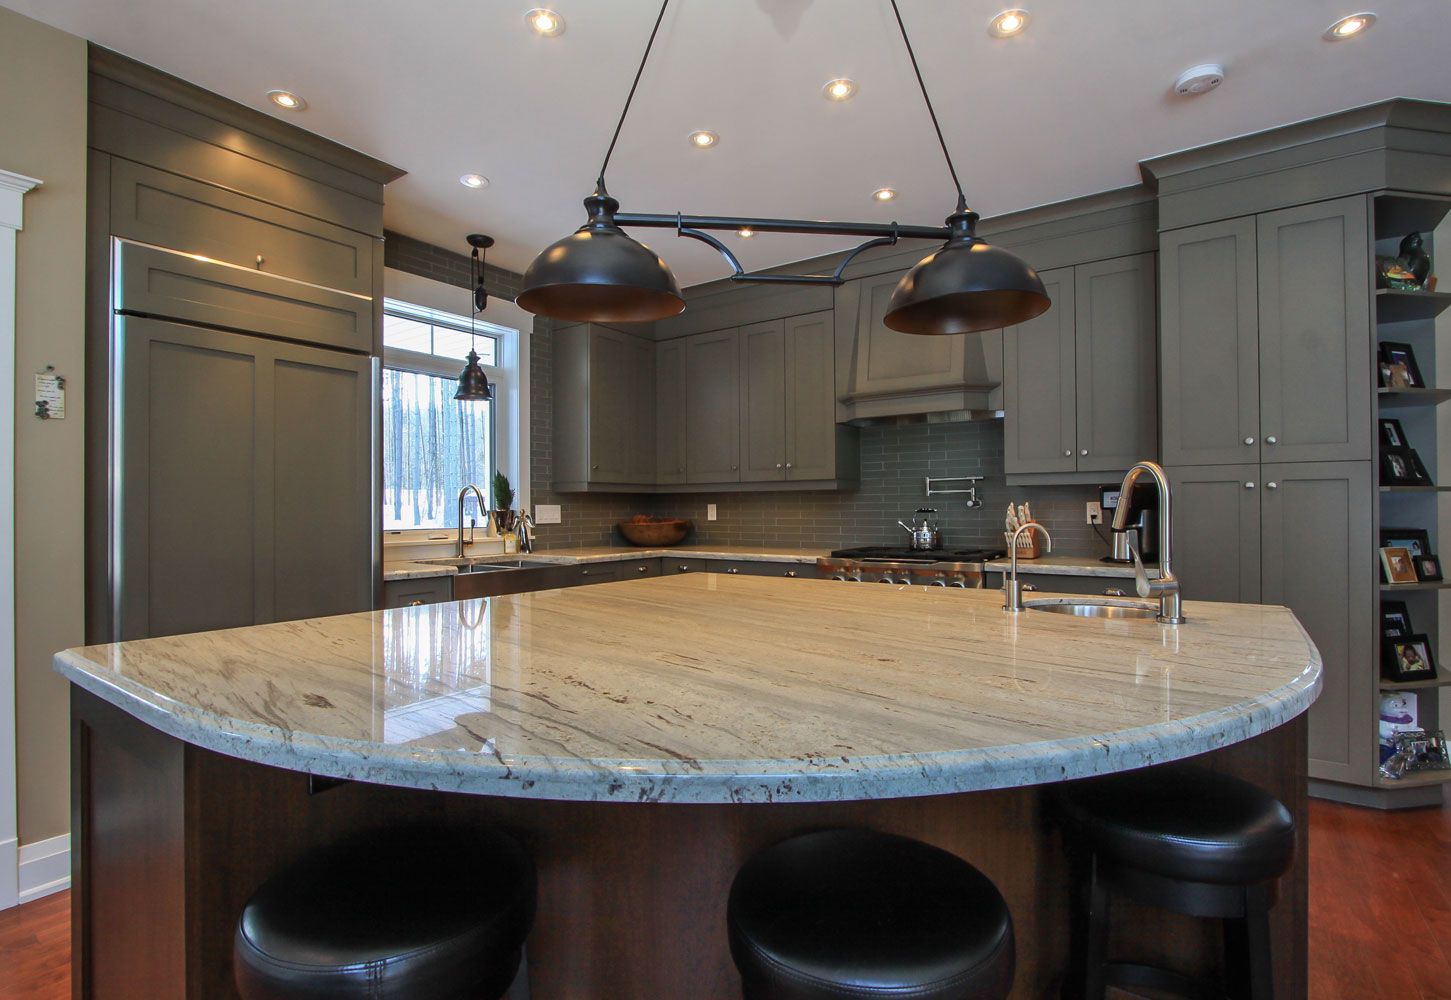 Rounded kitchen island design